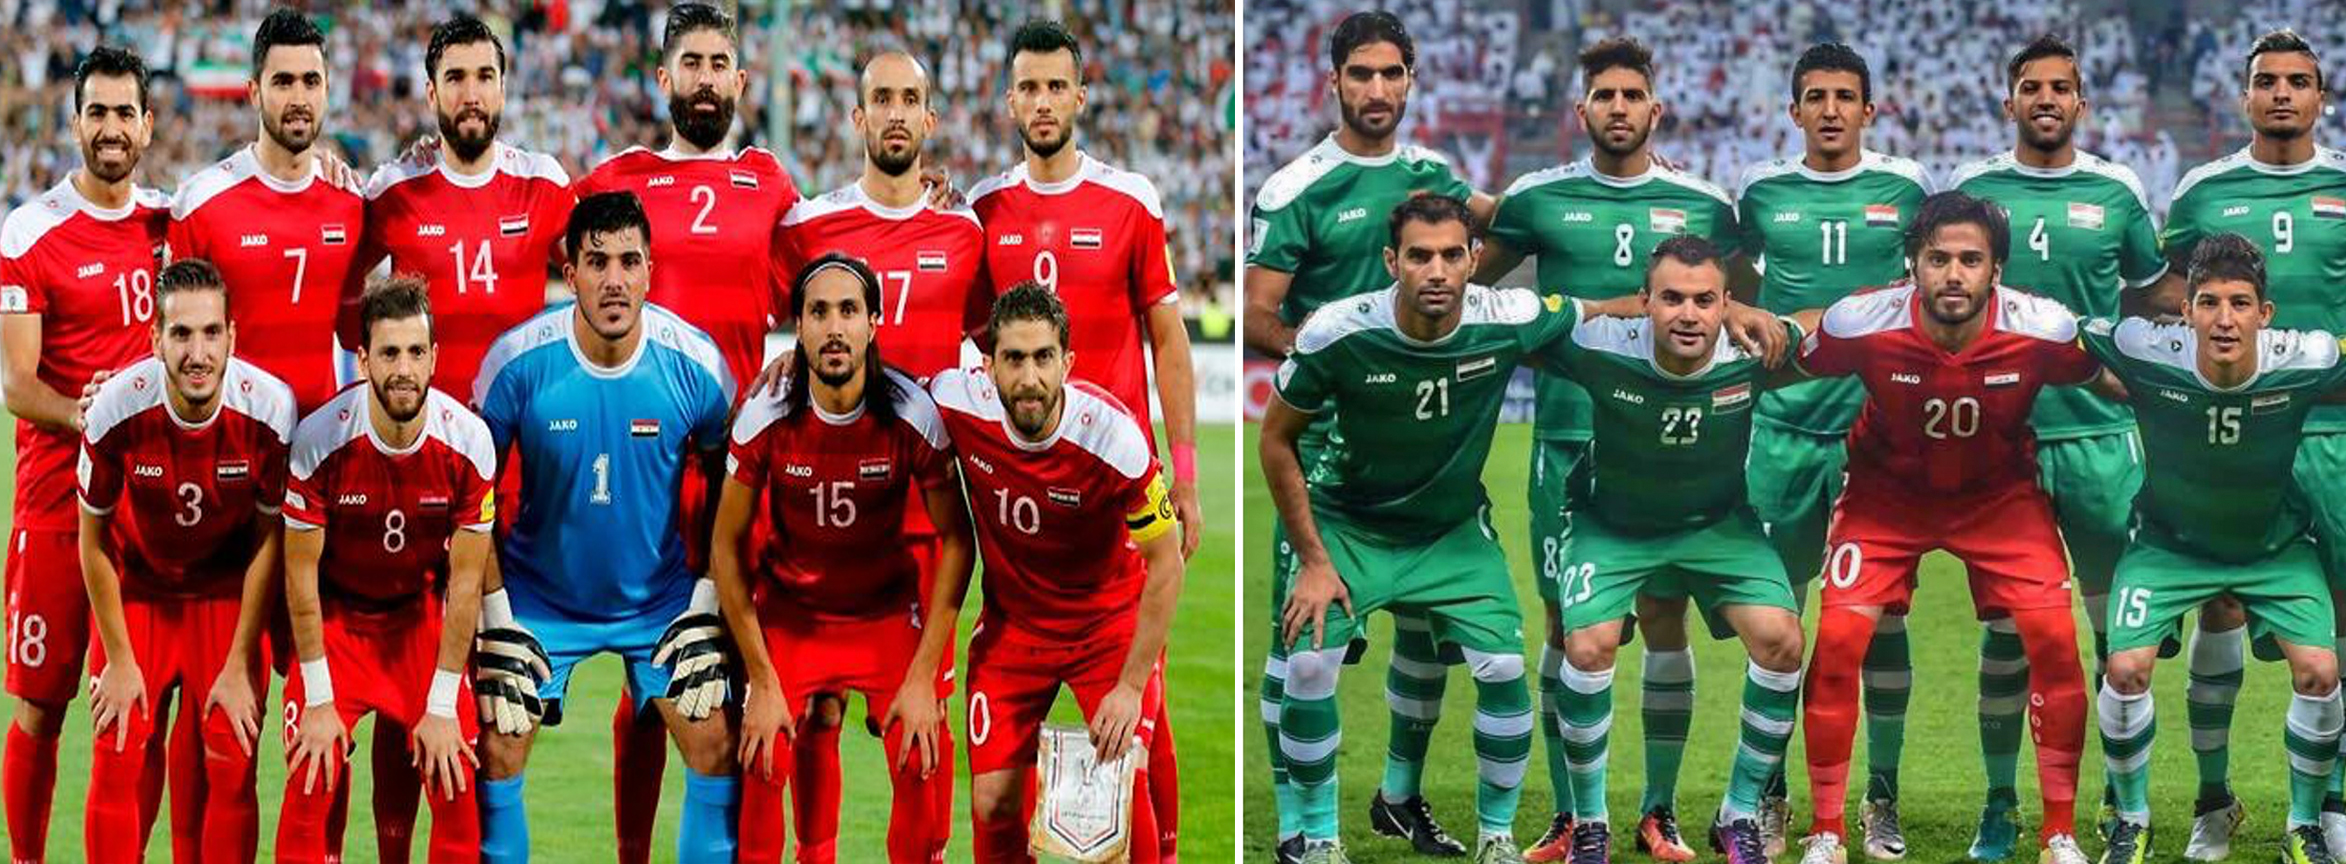 Iraq and Syria national team Jako jerseys now available on Soccer Iraq